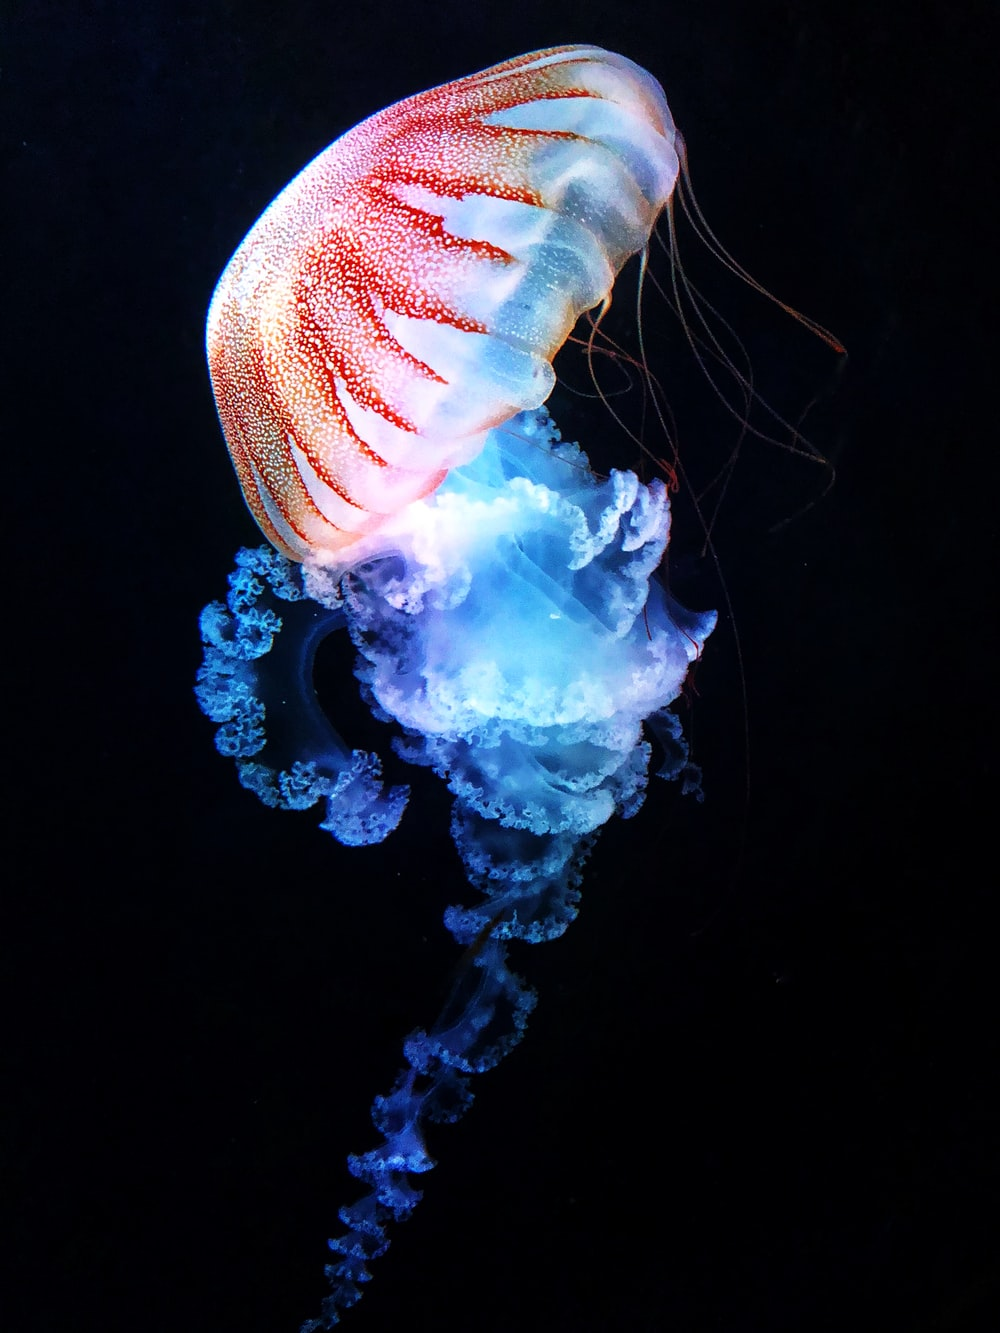 blue and white jellyfish in water